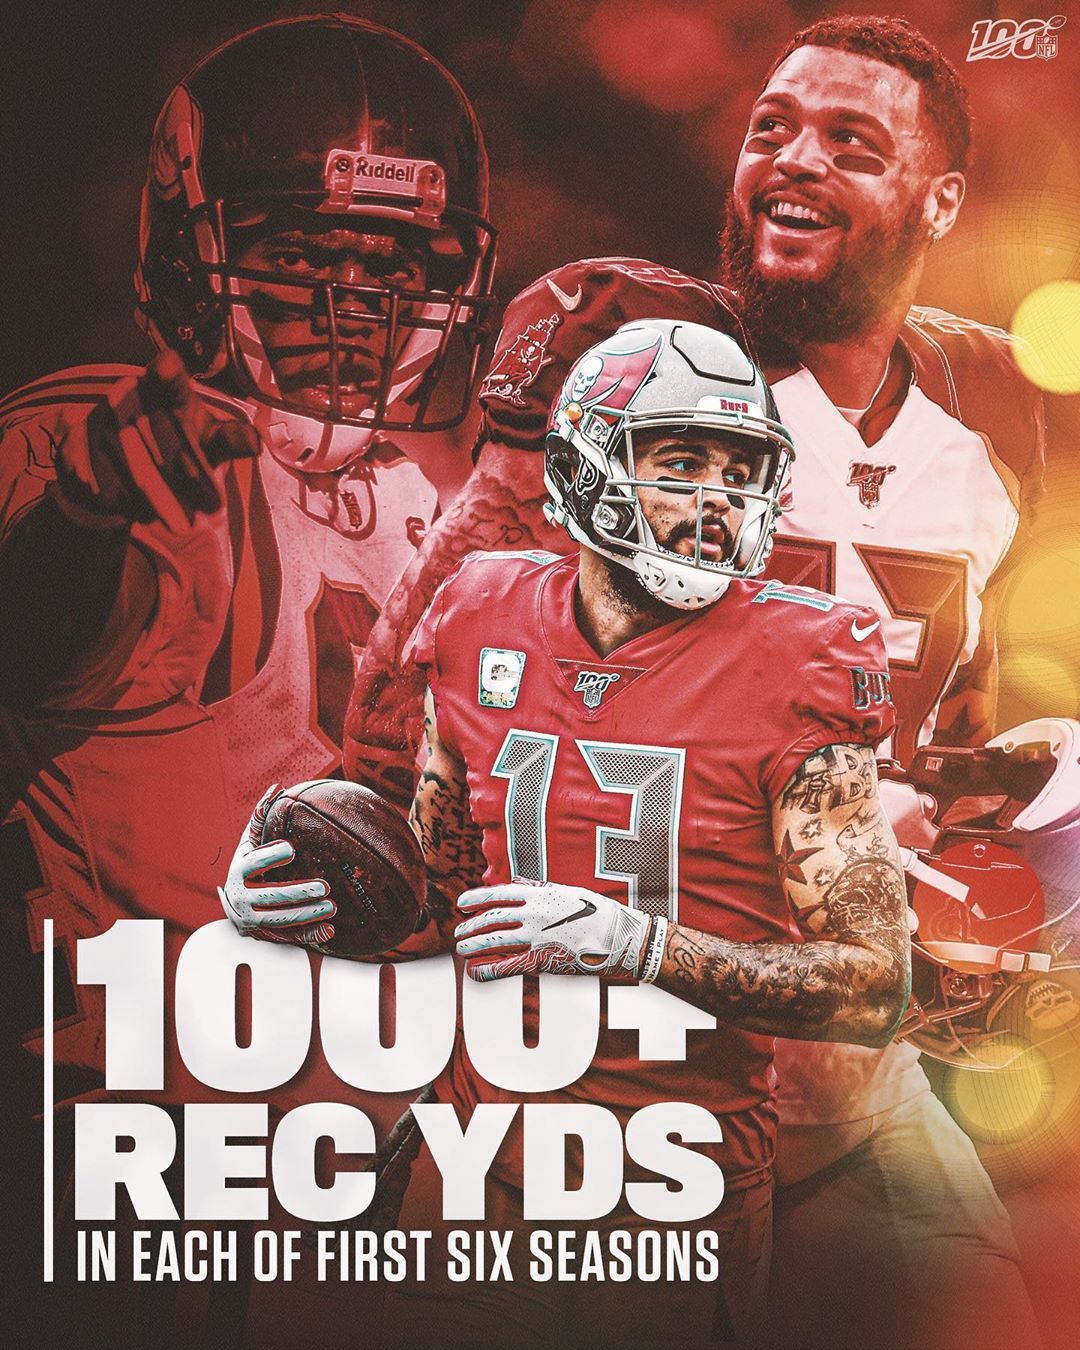 Nfl Mikeevans Is Just The Second Player Ever With At Least 1 000 Receiving Yards In Big4 Bigfour Big4 Nfl Two By Two National Football League